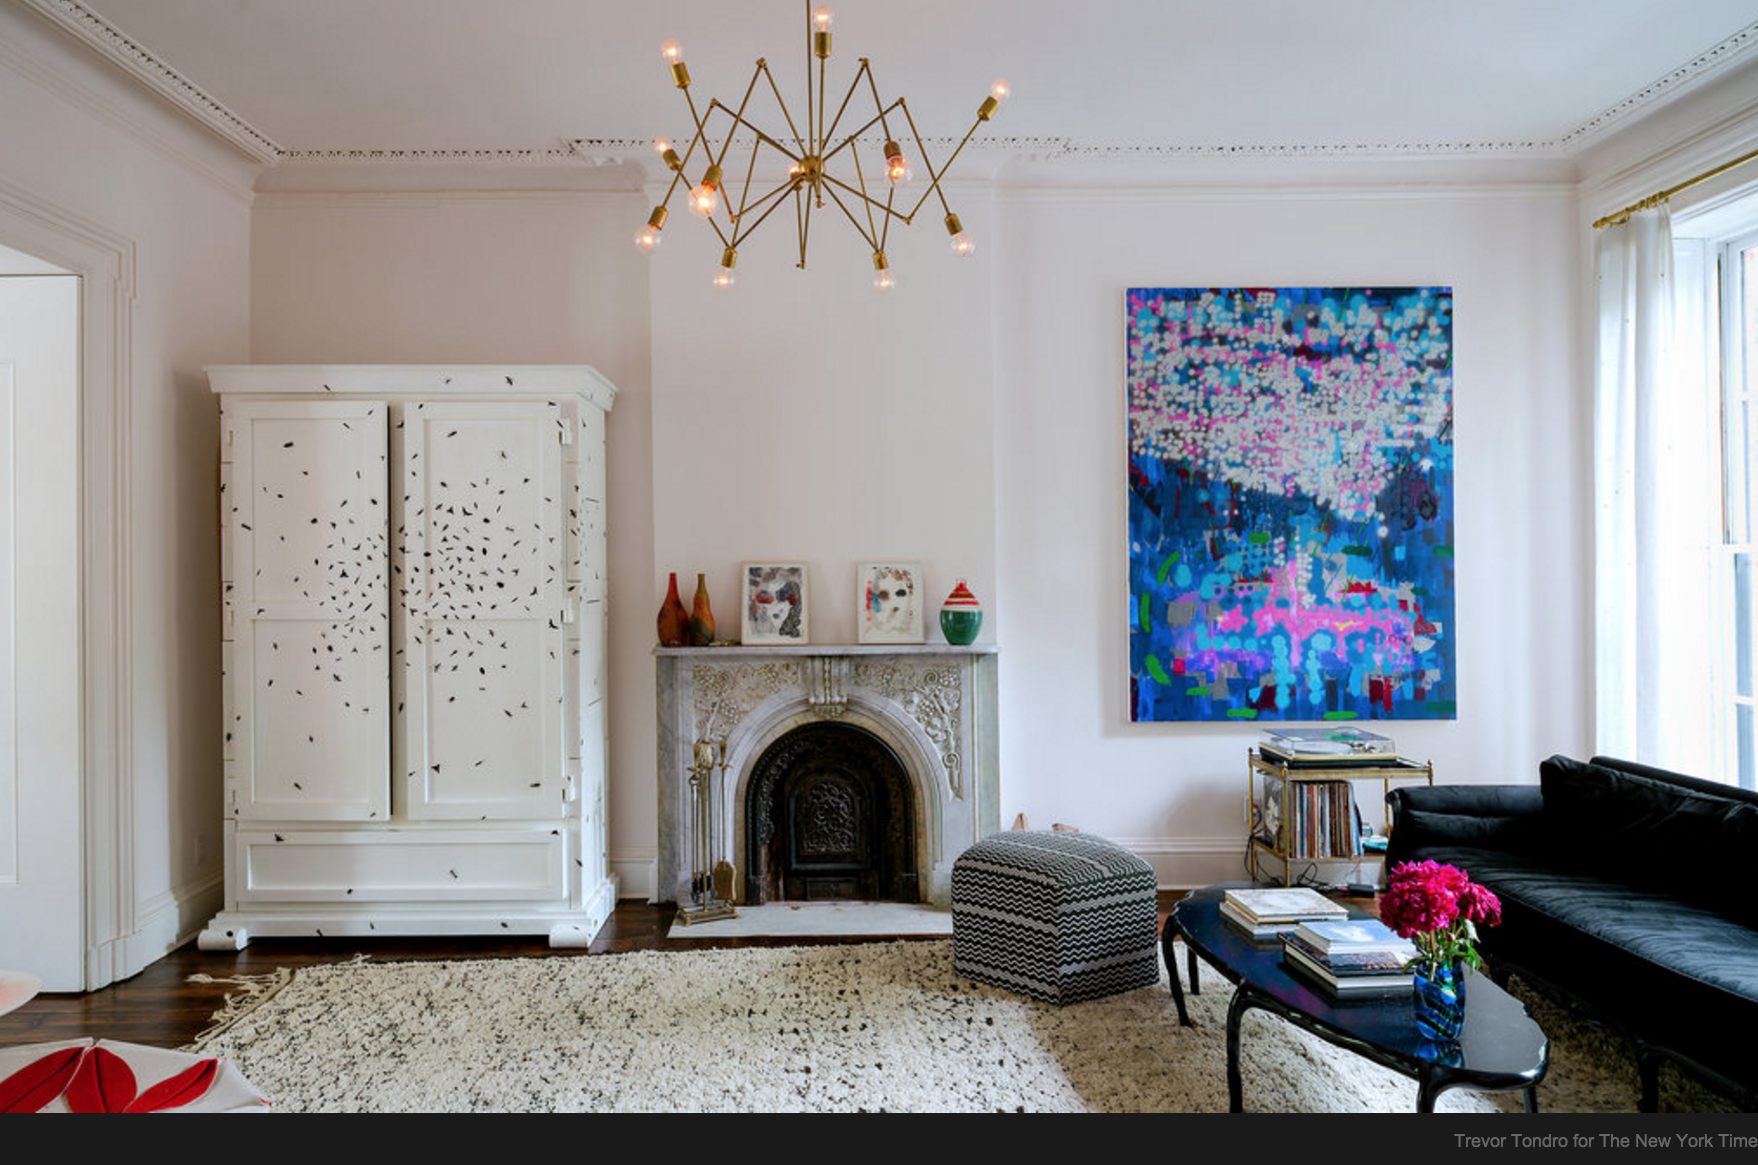 You do not have to hang a large piece of art or a mirror over a mantle.The armoire and painting are both rectangular, the symmetry and placement of them on either side of the fireplace make this wall balanced.